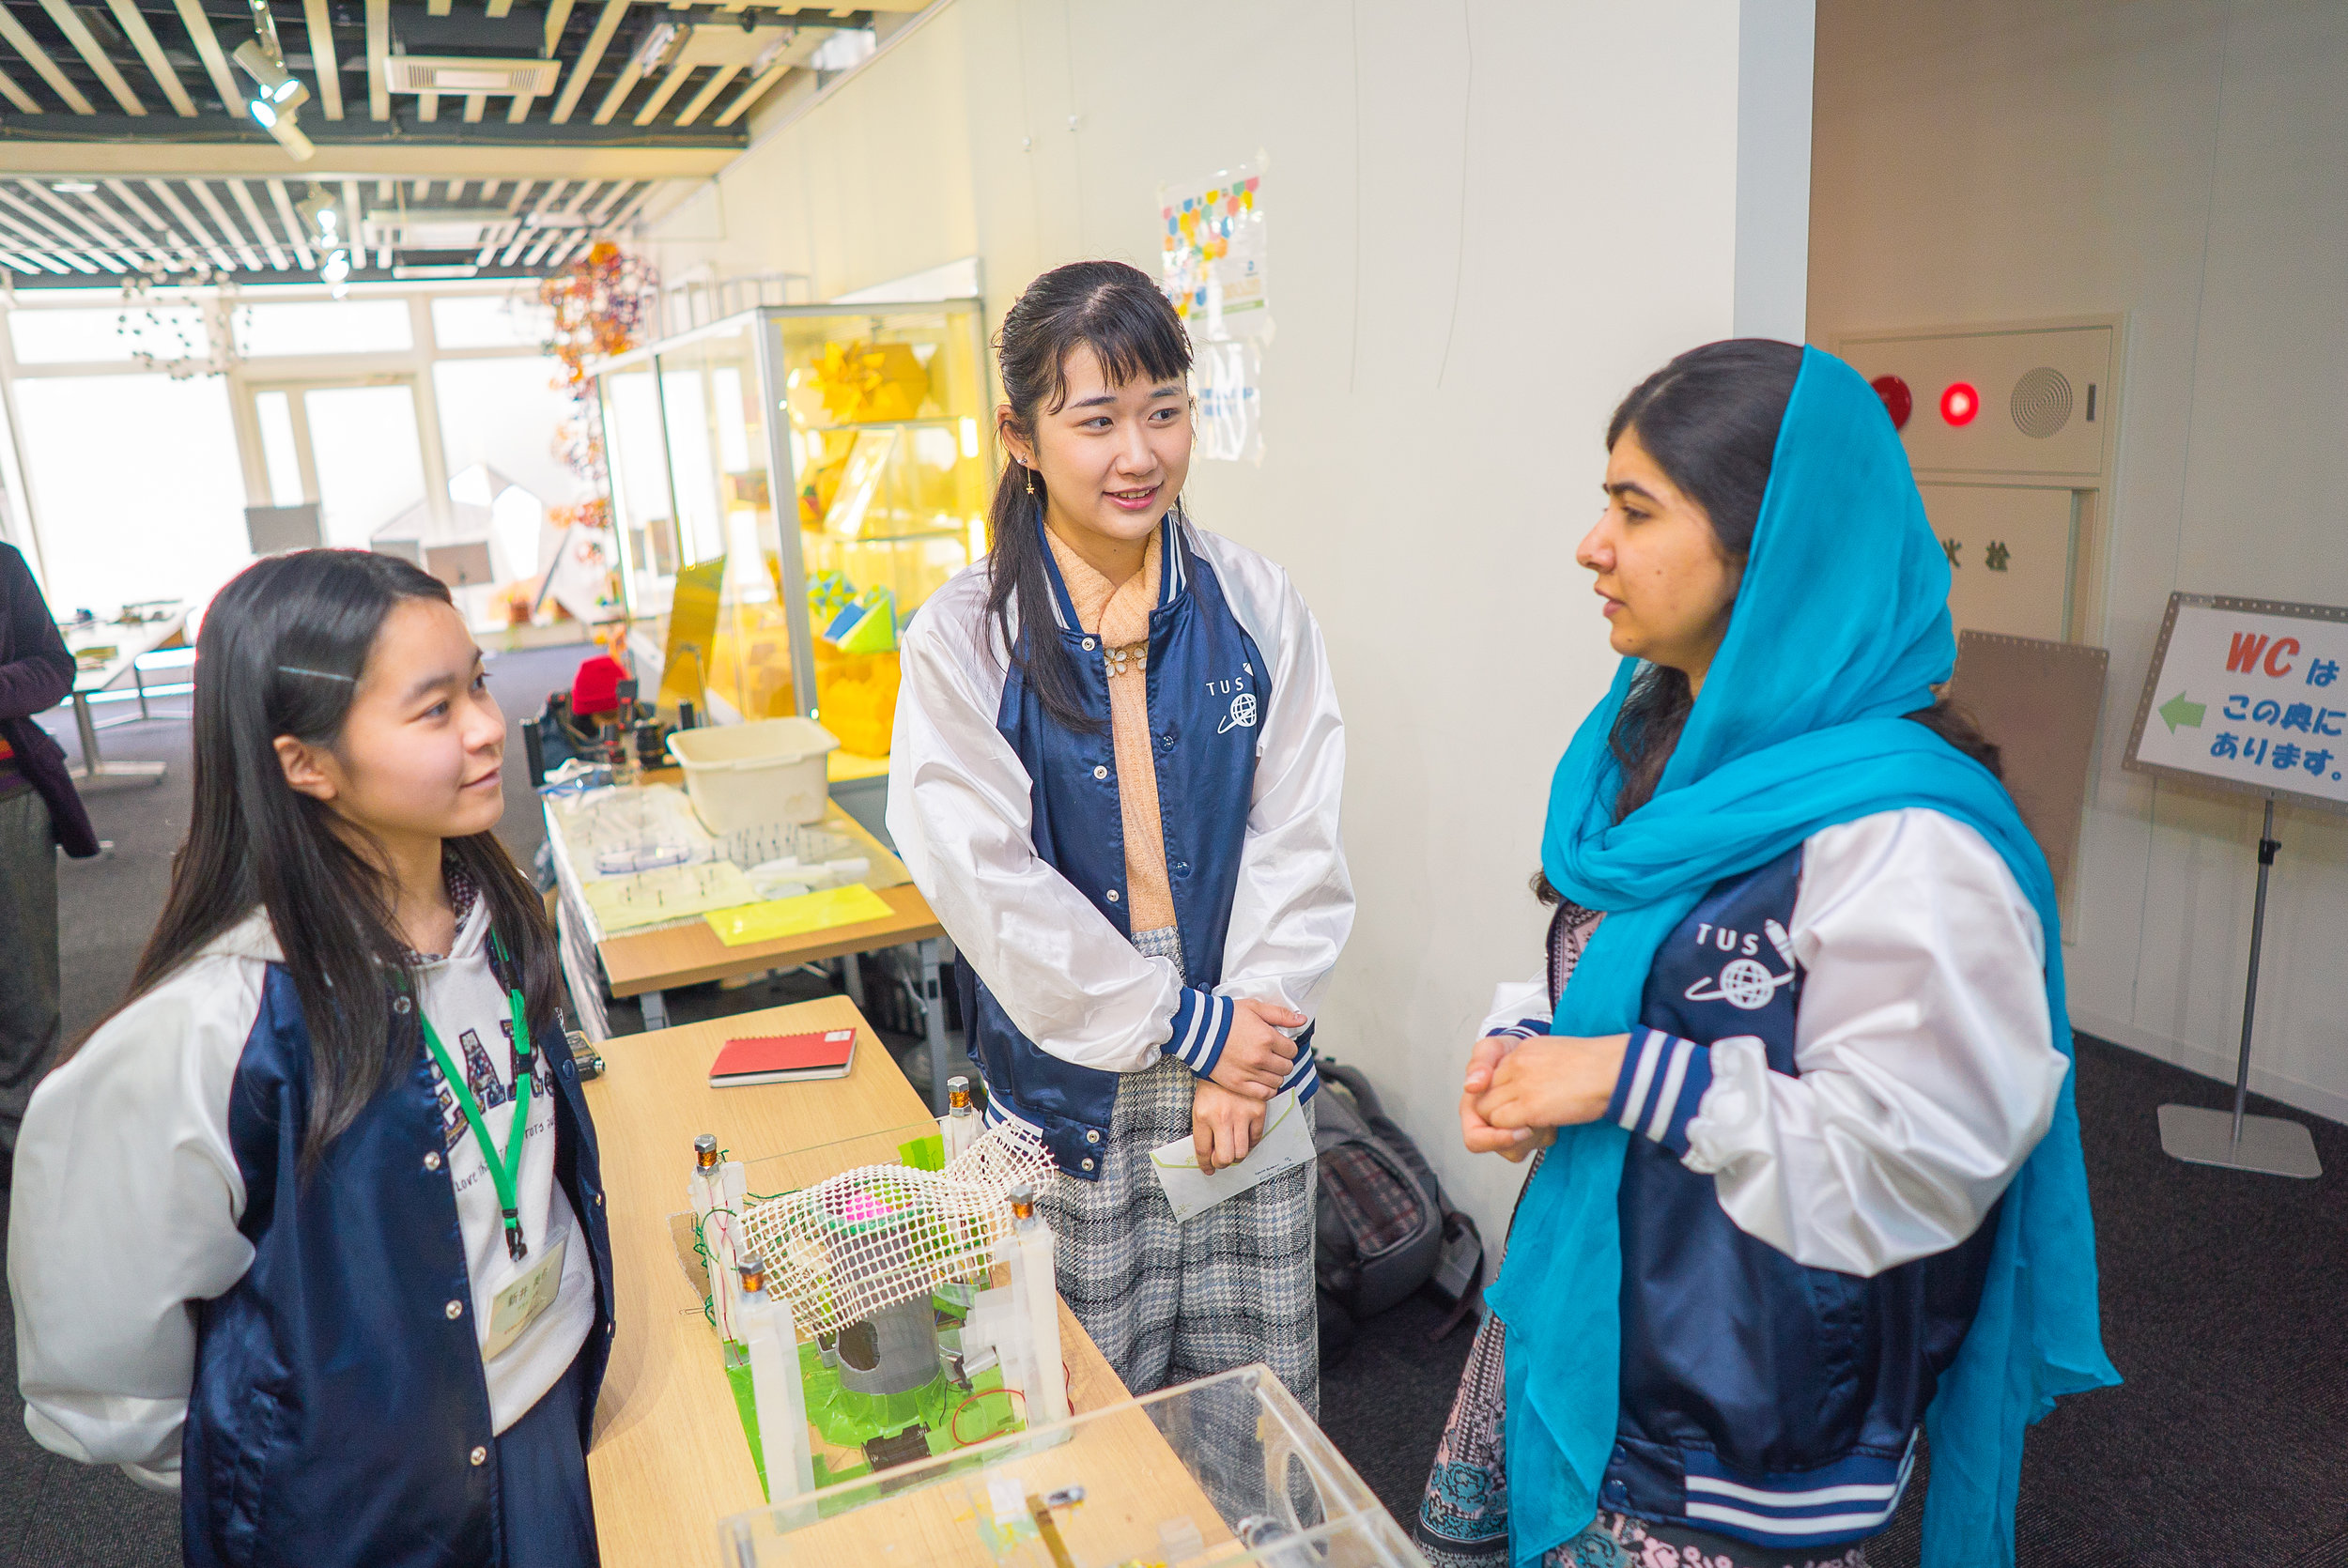 Miki (far left) and Emiko (middle) show their devices to Malala when she visited Tokyo University of Science in March 2019. (Courtesy of Amarachi Nwosu / Malala Fund)